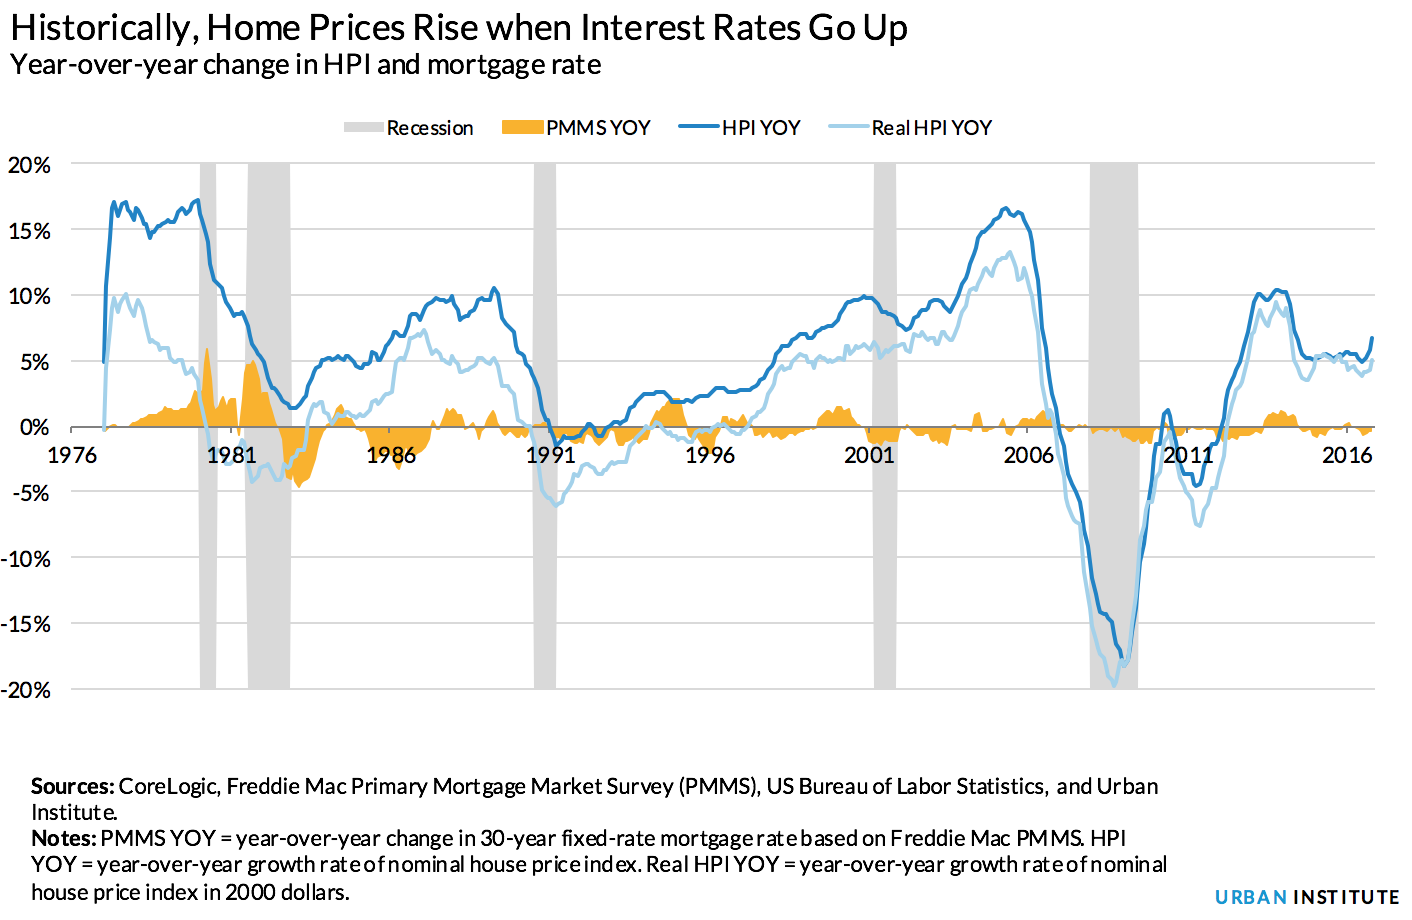 Historically house prices rise when interest rates go up